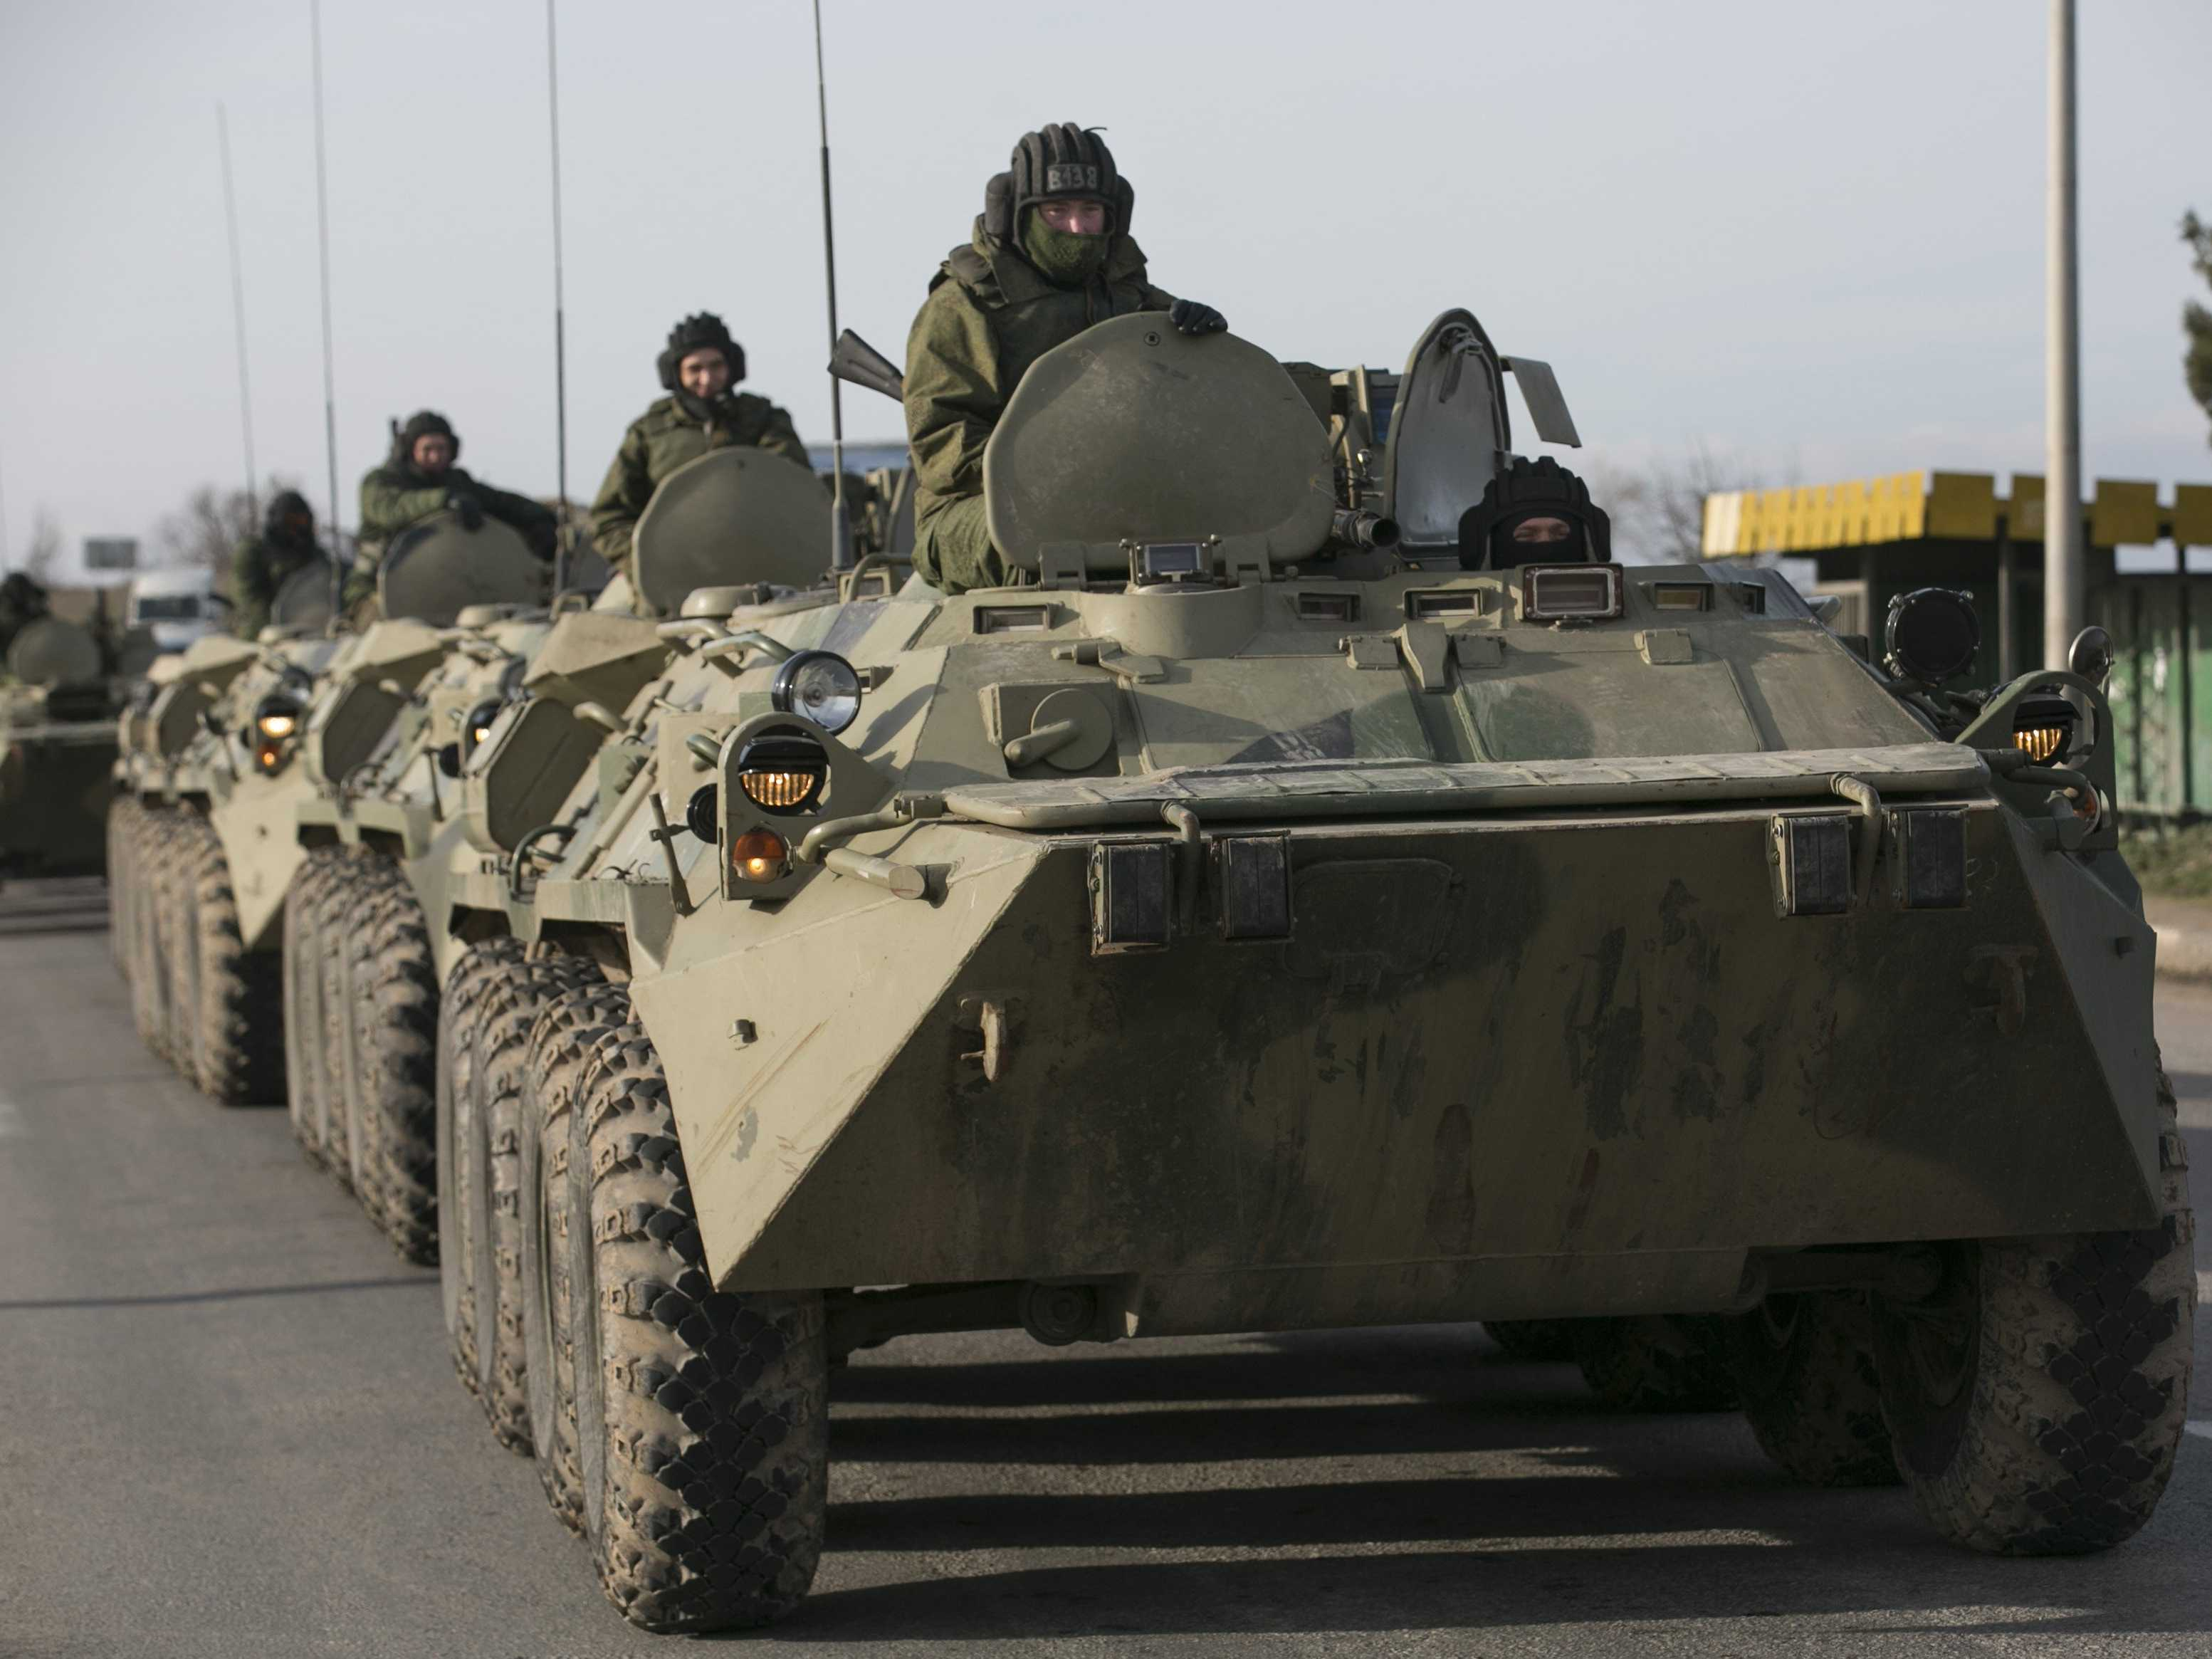 Russian troops in Crimea in March. REUTERS Photo